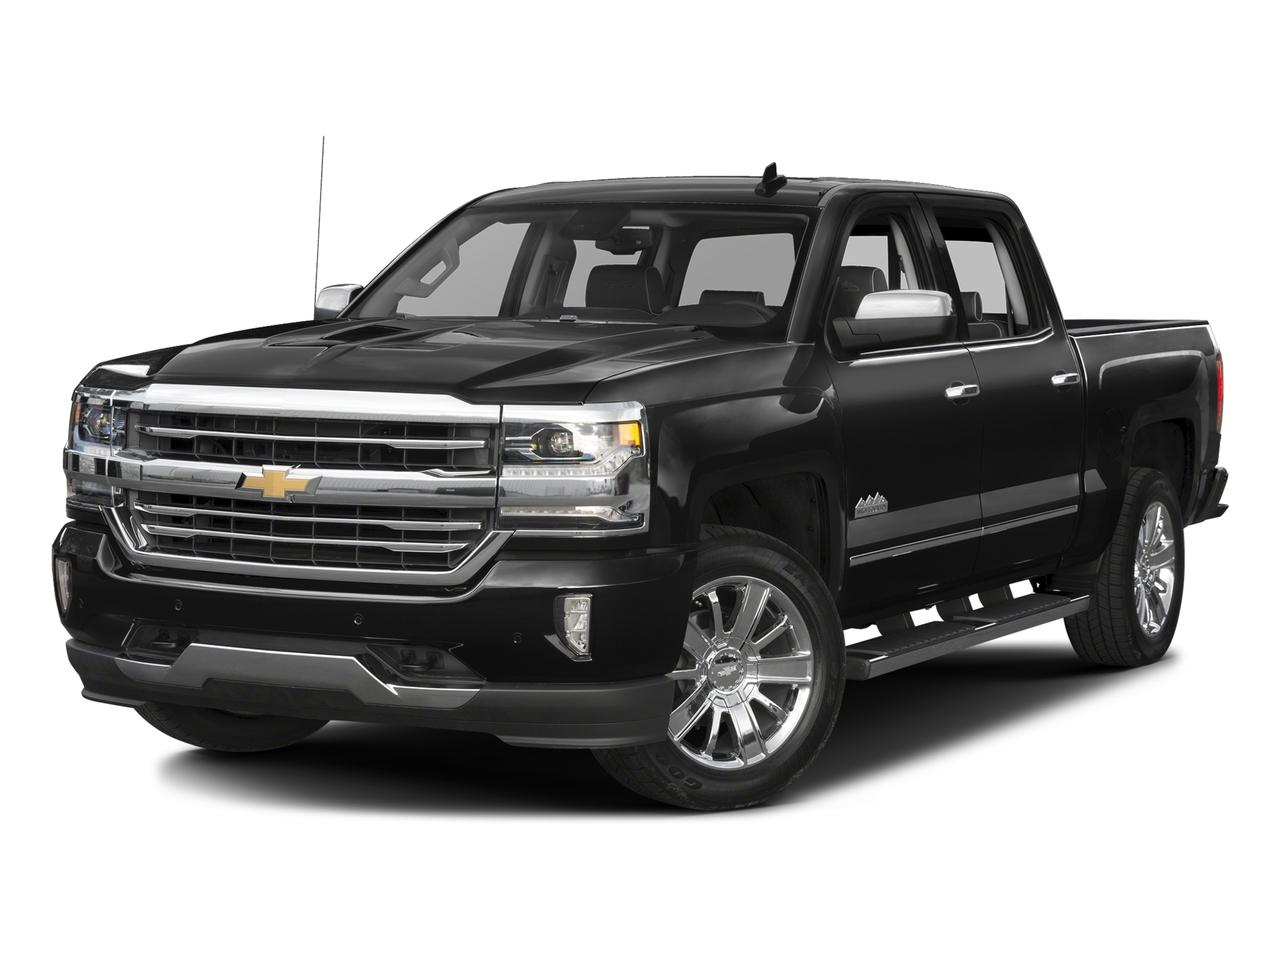 2017 Chevrolet Silverado 1500 Vehicle Photo in Souderton, PA 18964-1038